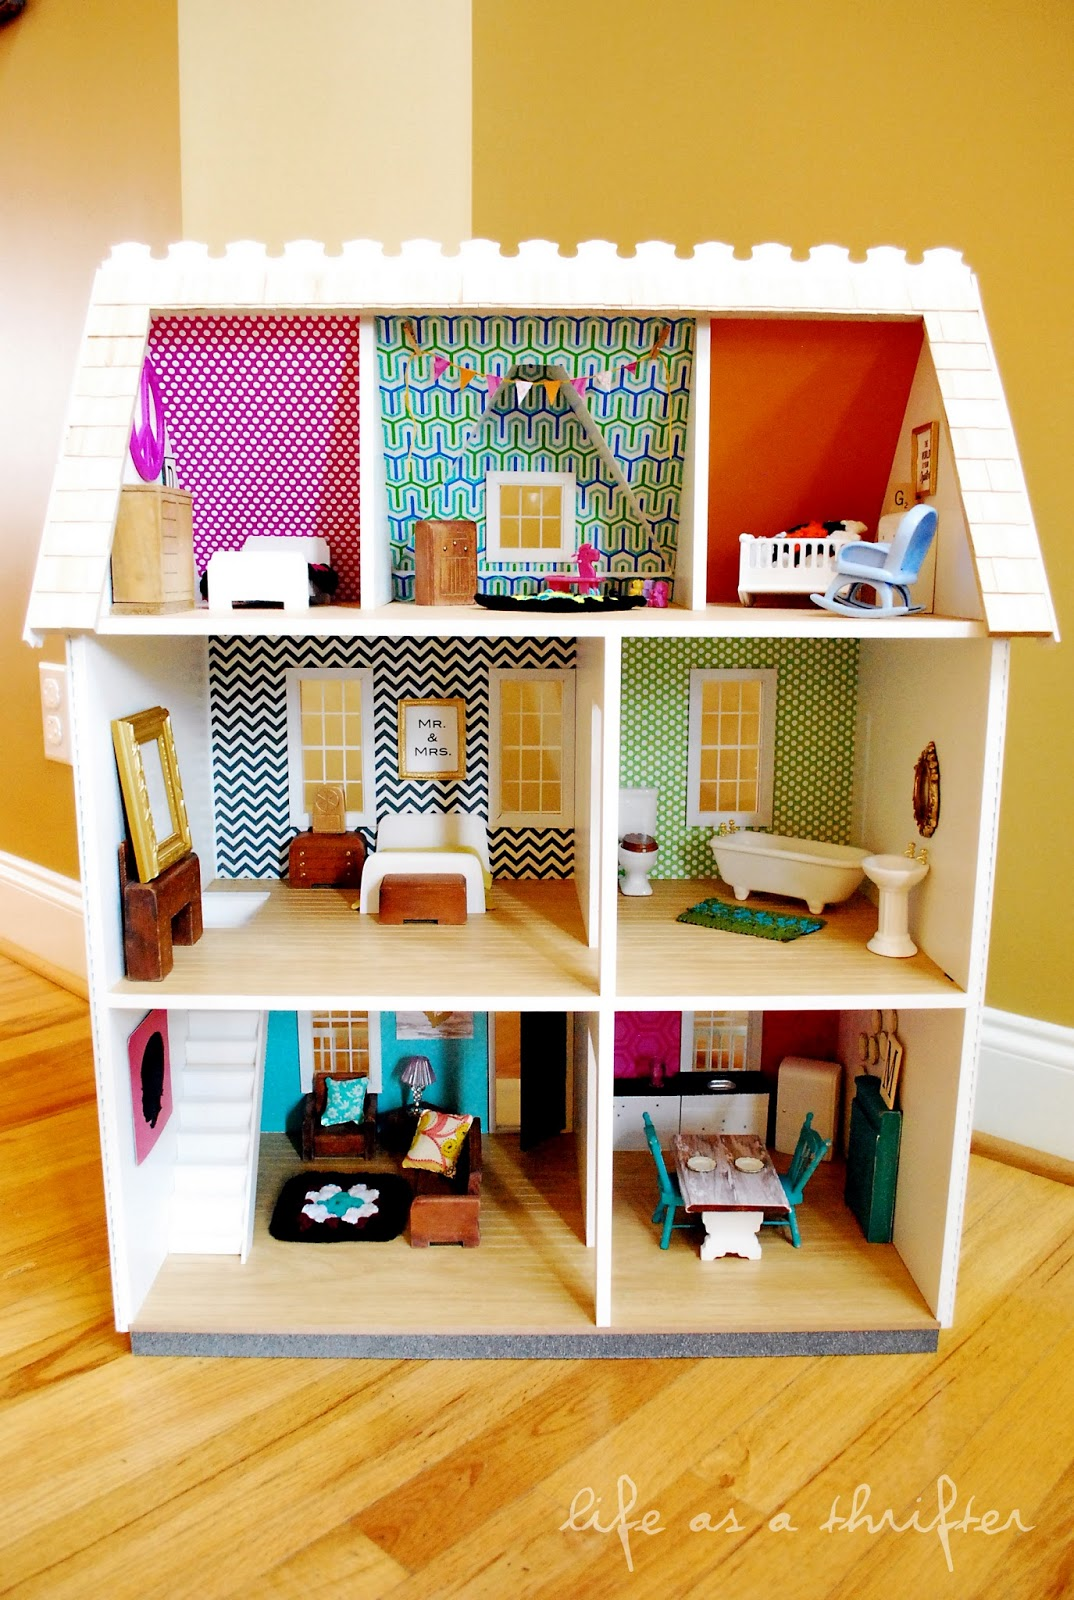 Life as a thrifter dollhouse details diy wall art Make home design